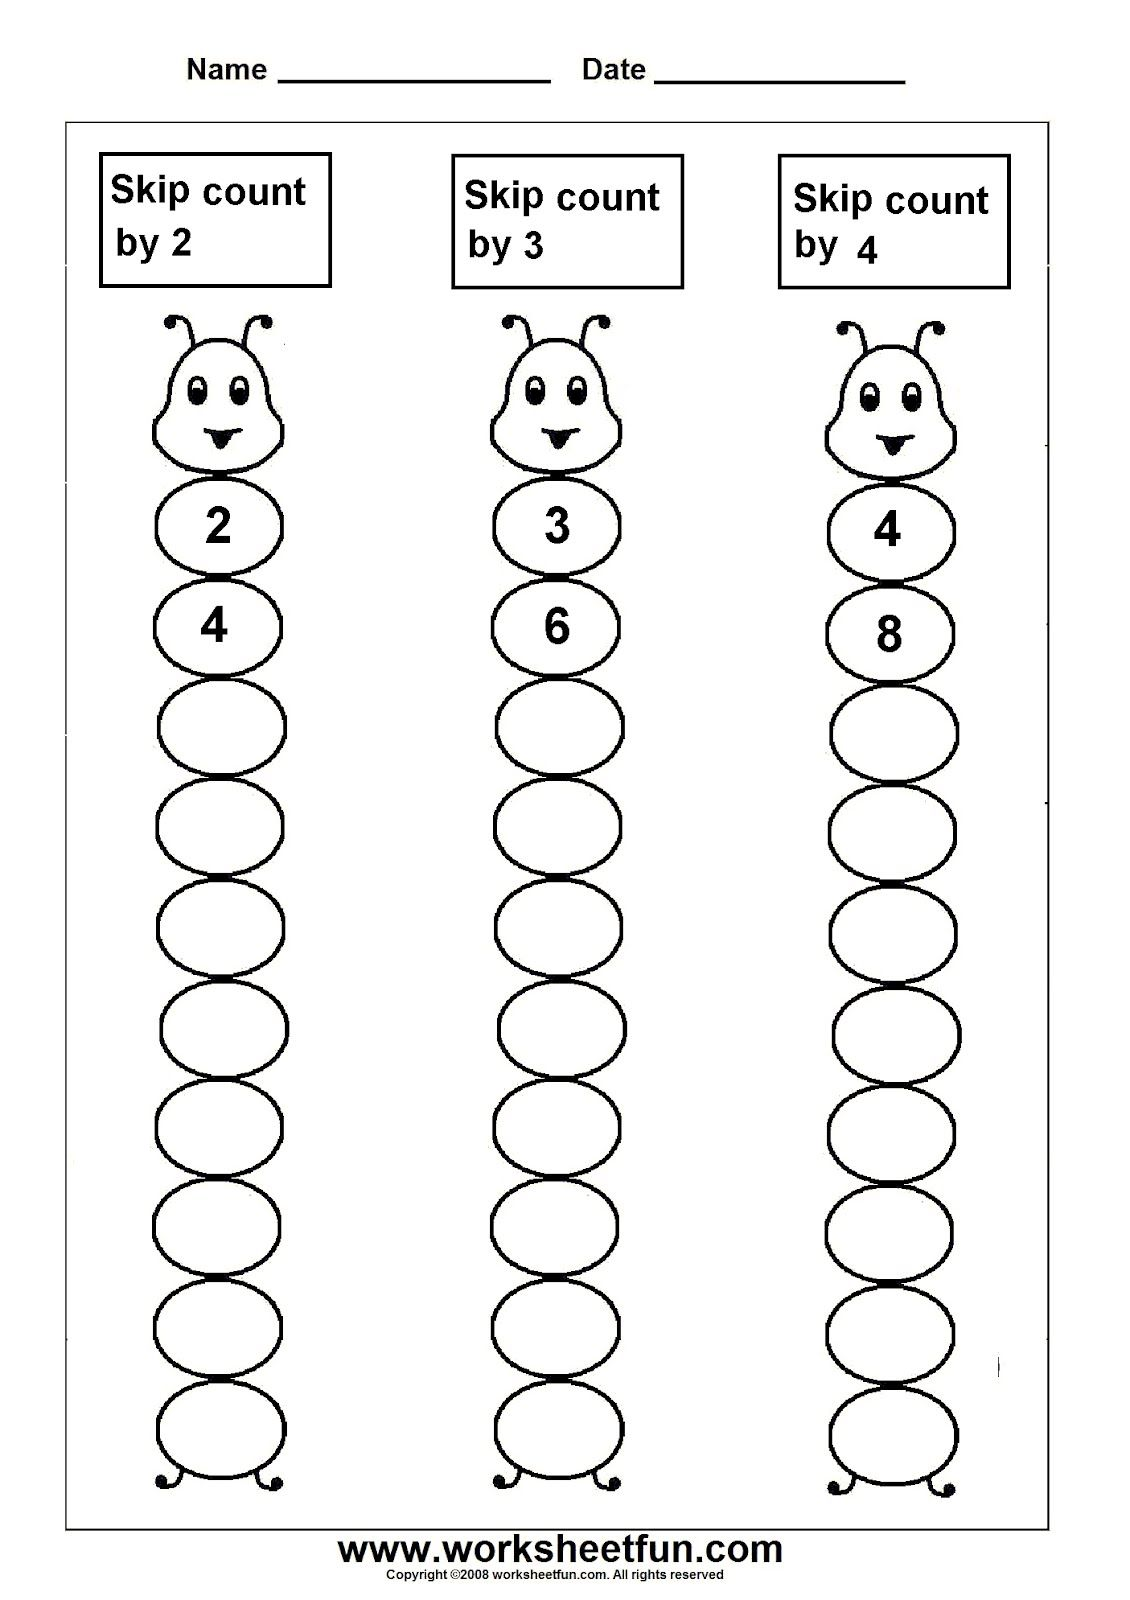 math worksheet : 1000 images about maths on pinterest  addition worksheets skip  : Maths Worksheet For Year 1